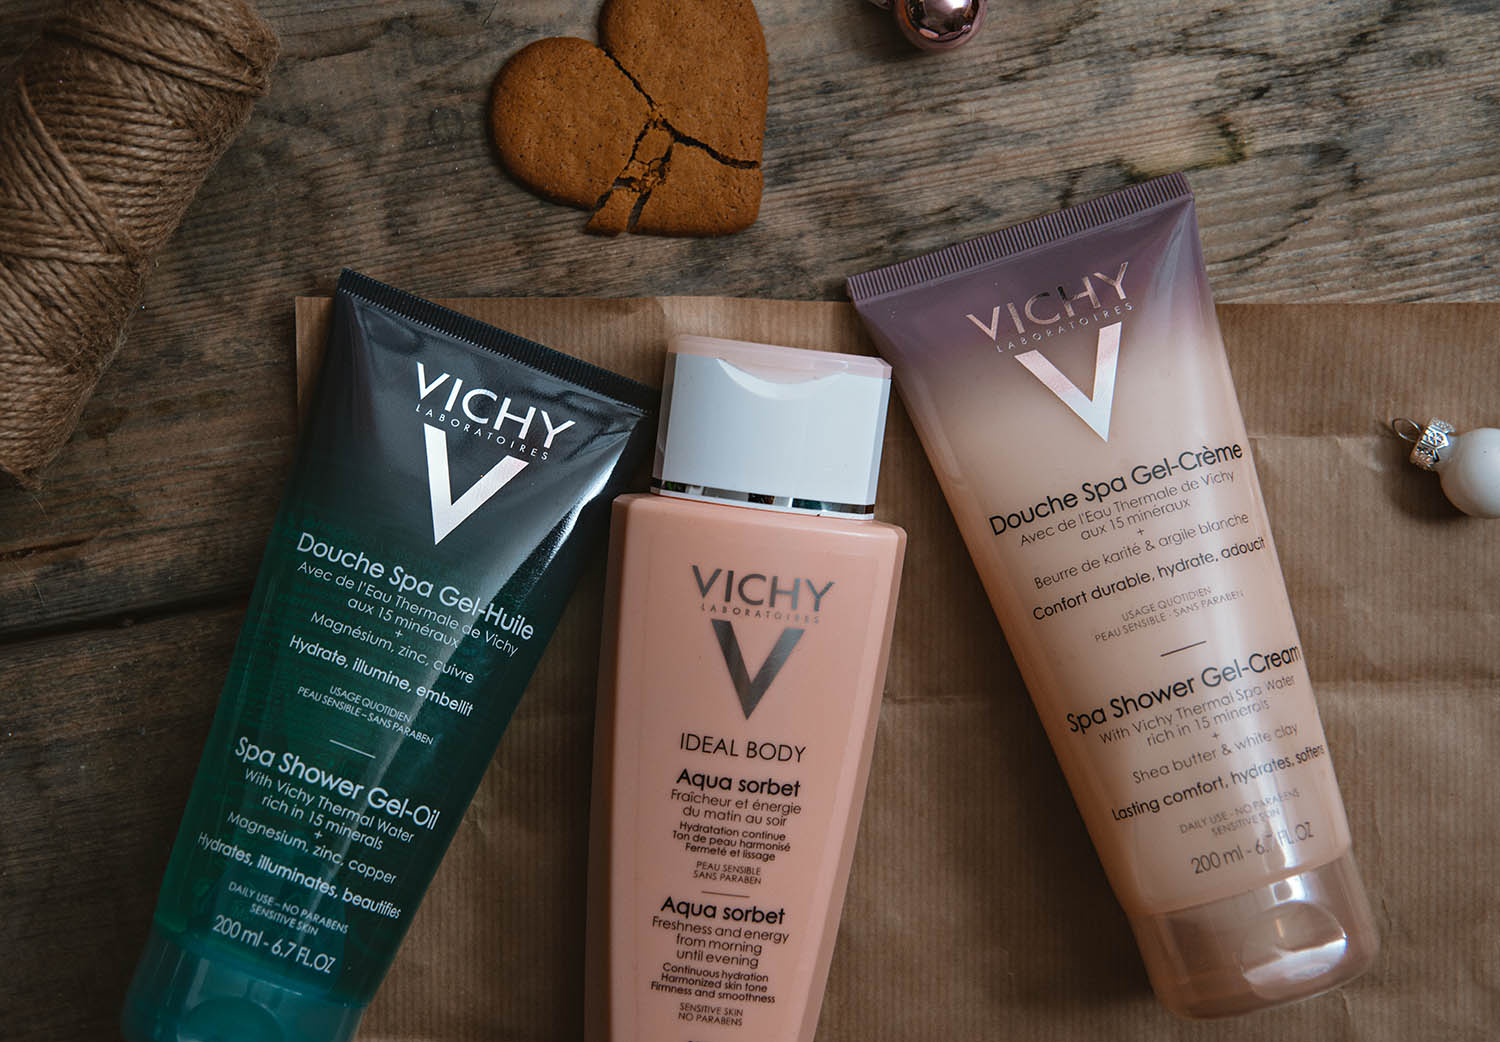 Vichy Spa & Ideal Body